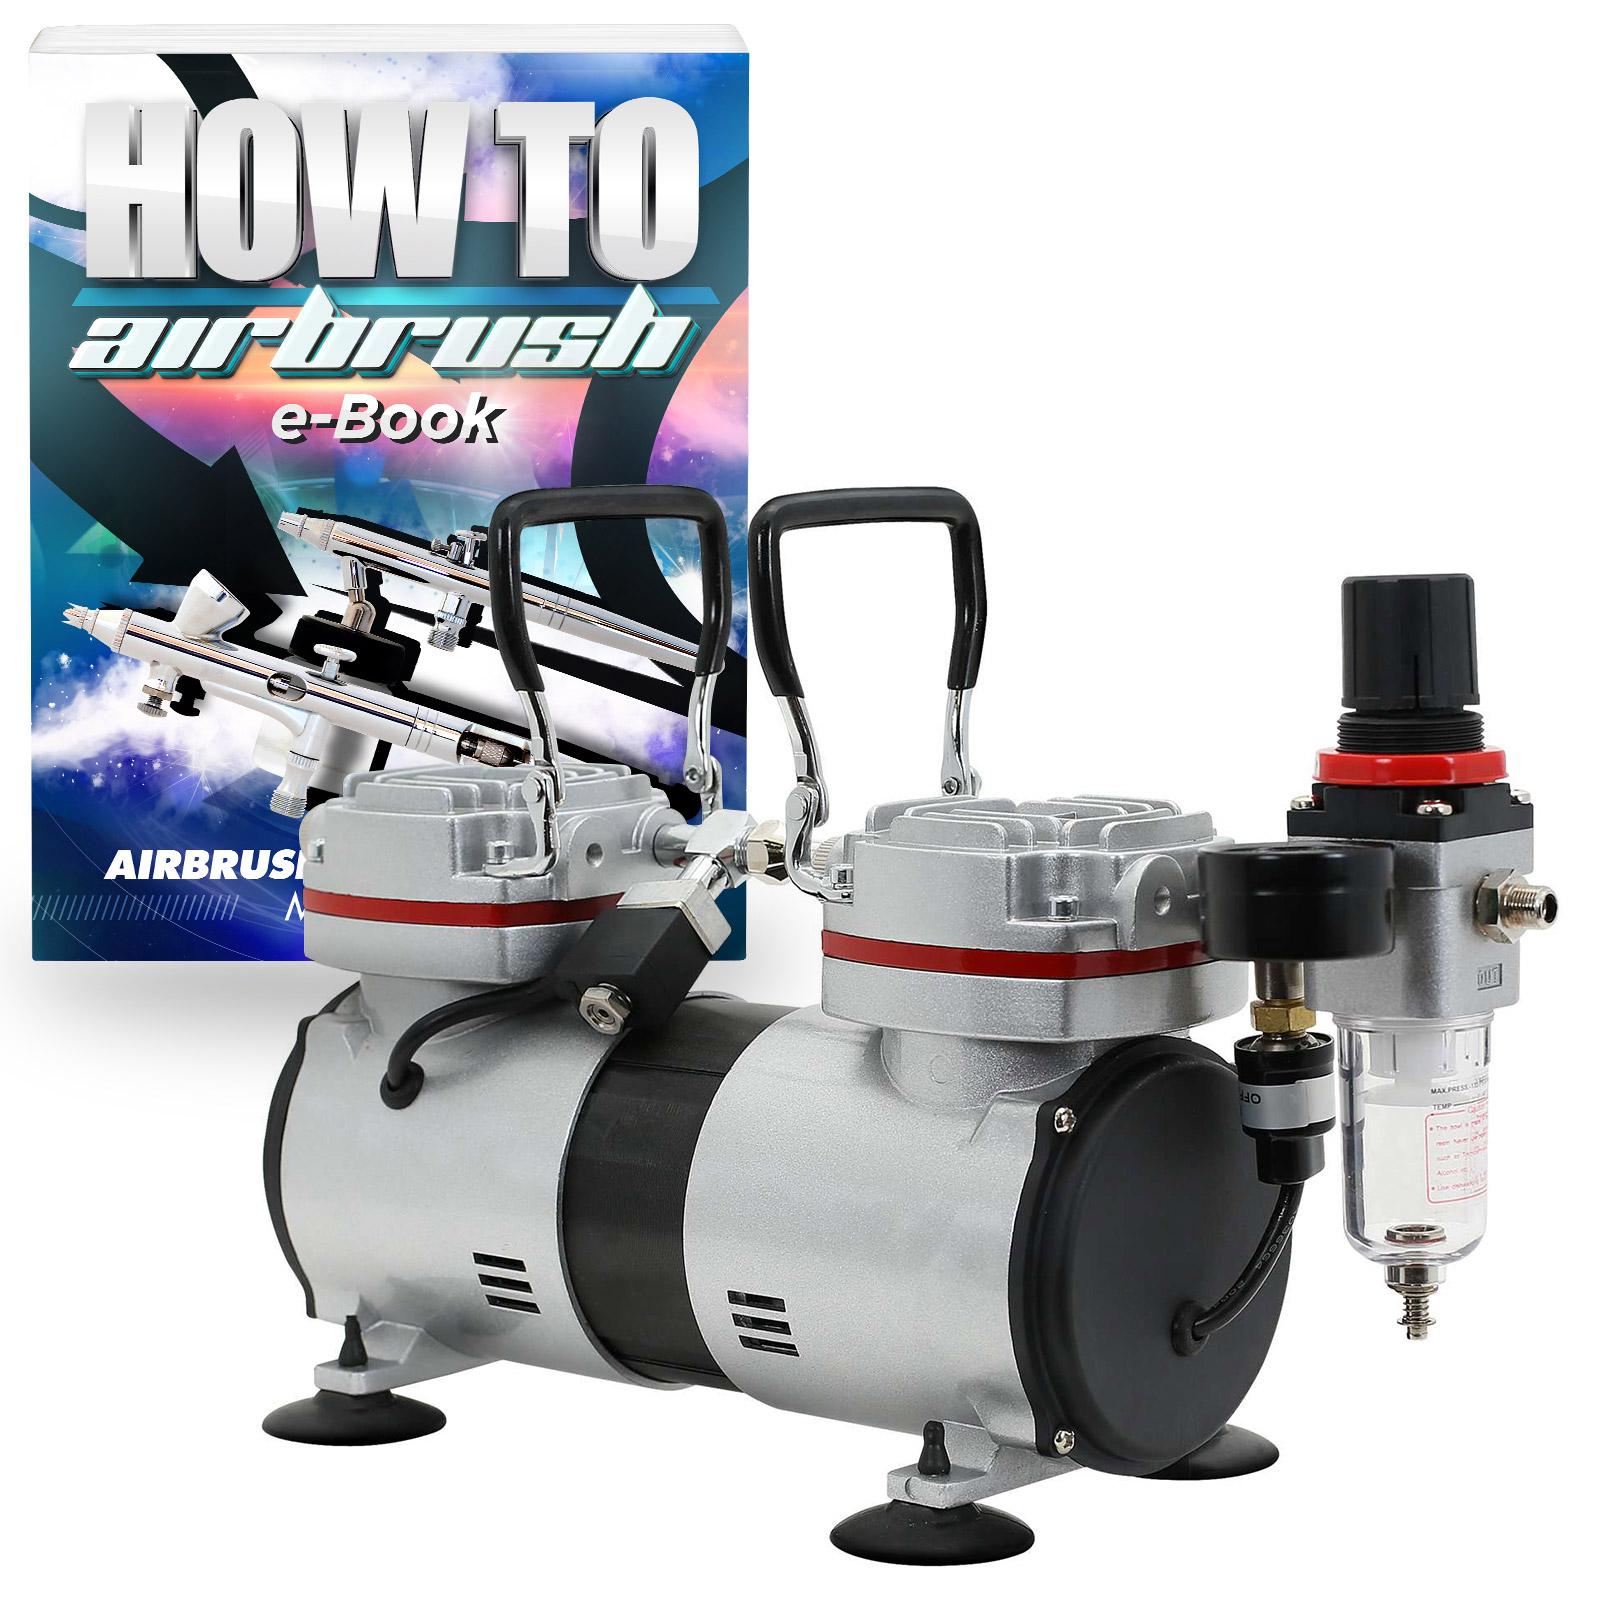 PointZero Pro Airbrush Air Compressor Tankless Twin Piston 1/3 HP